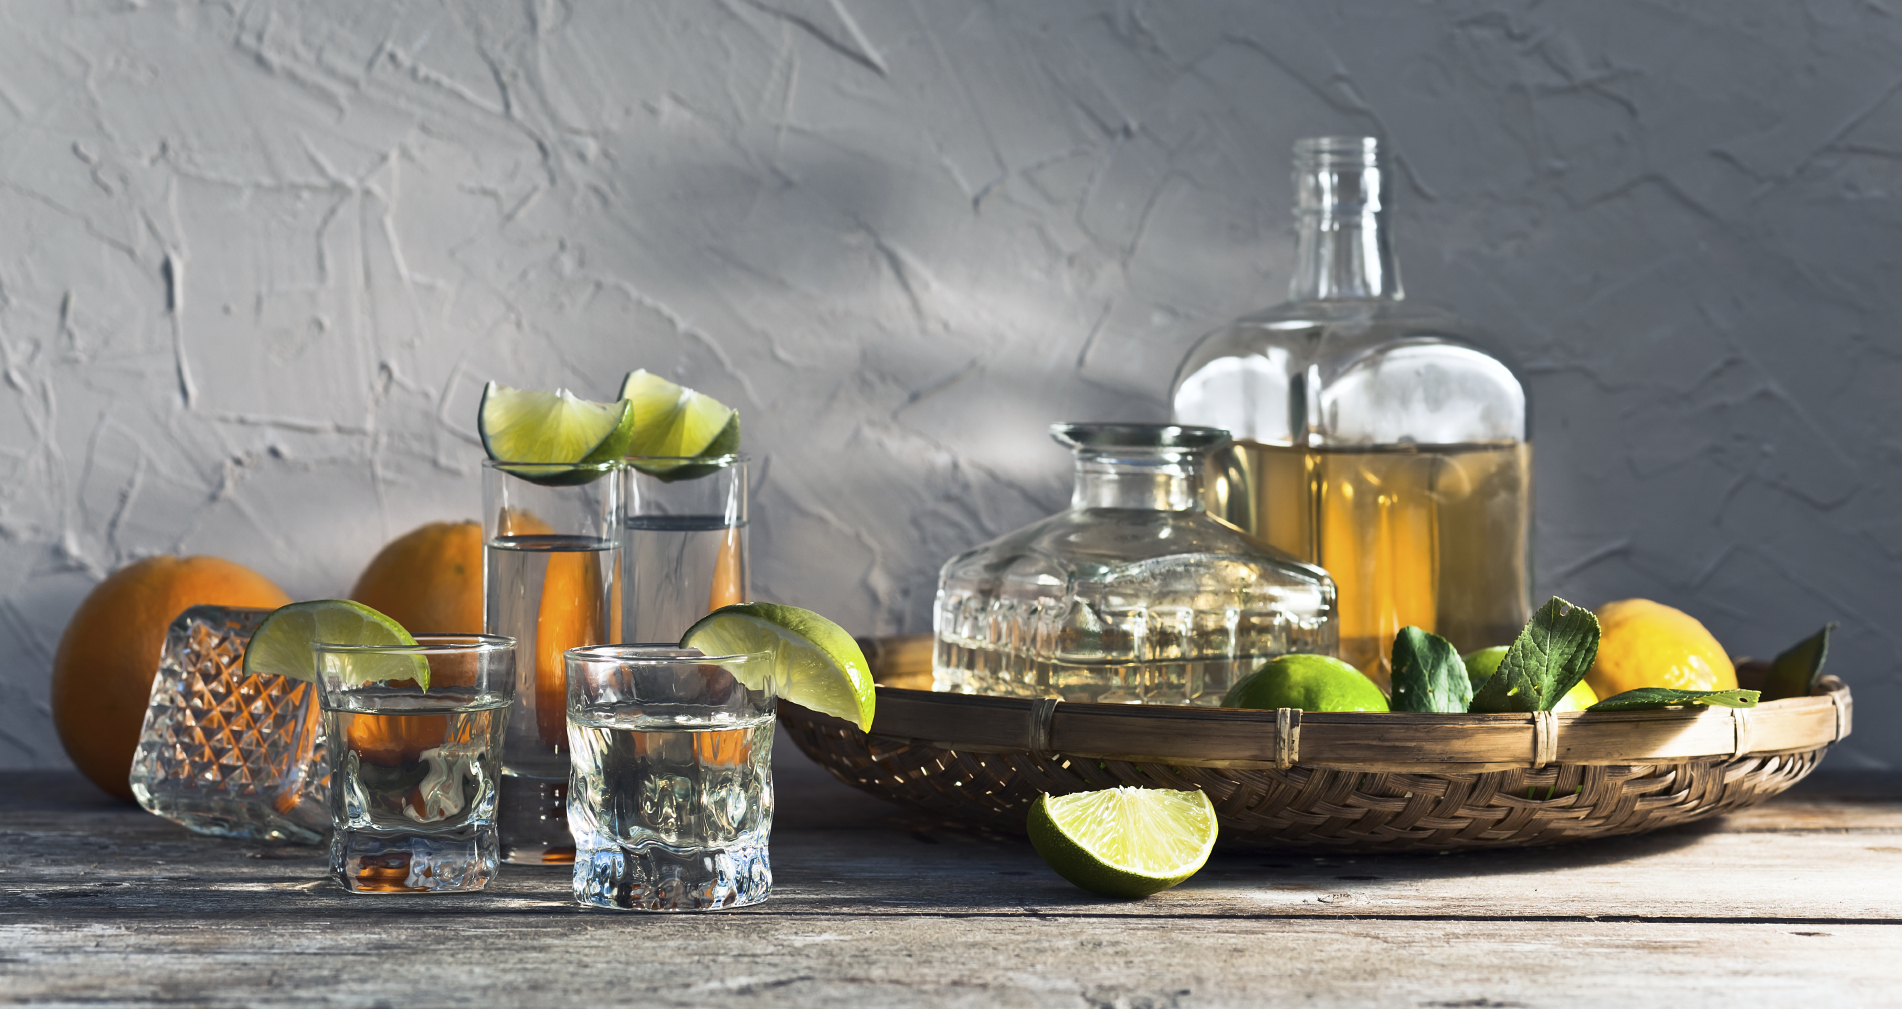 Tequila Bar with various types of tequilas and garnishes for guests to try - lemons, limes, oranges, and grapefruits + salt/sugar + fresh juices [grapefruit, pineapple, etc..]